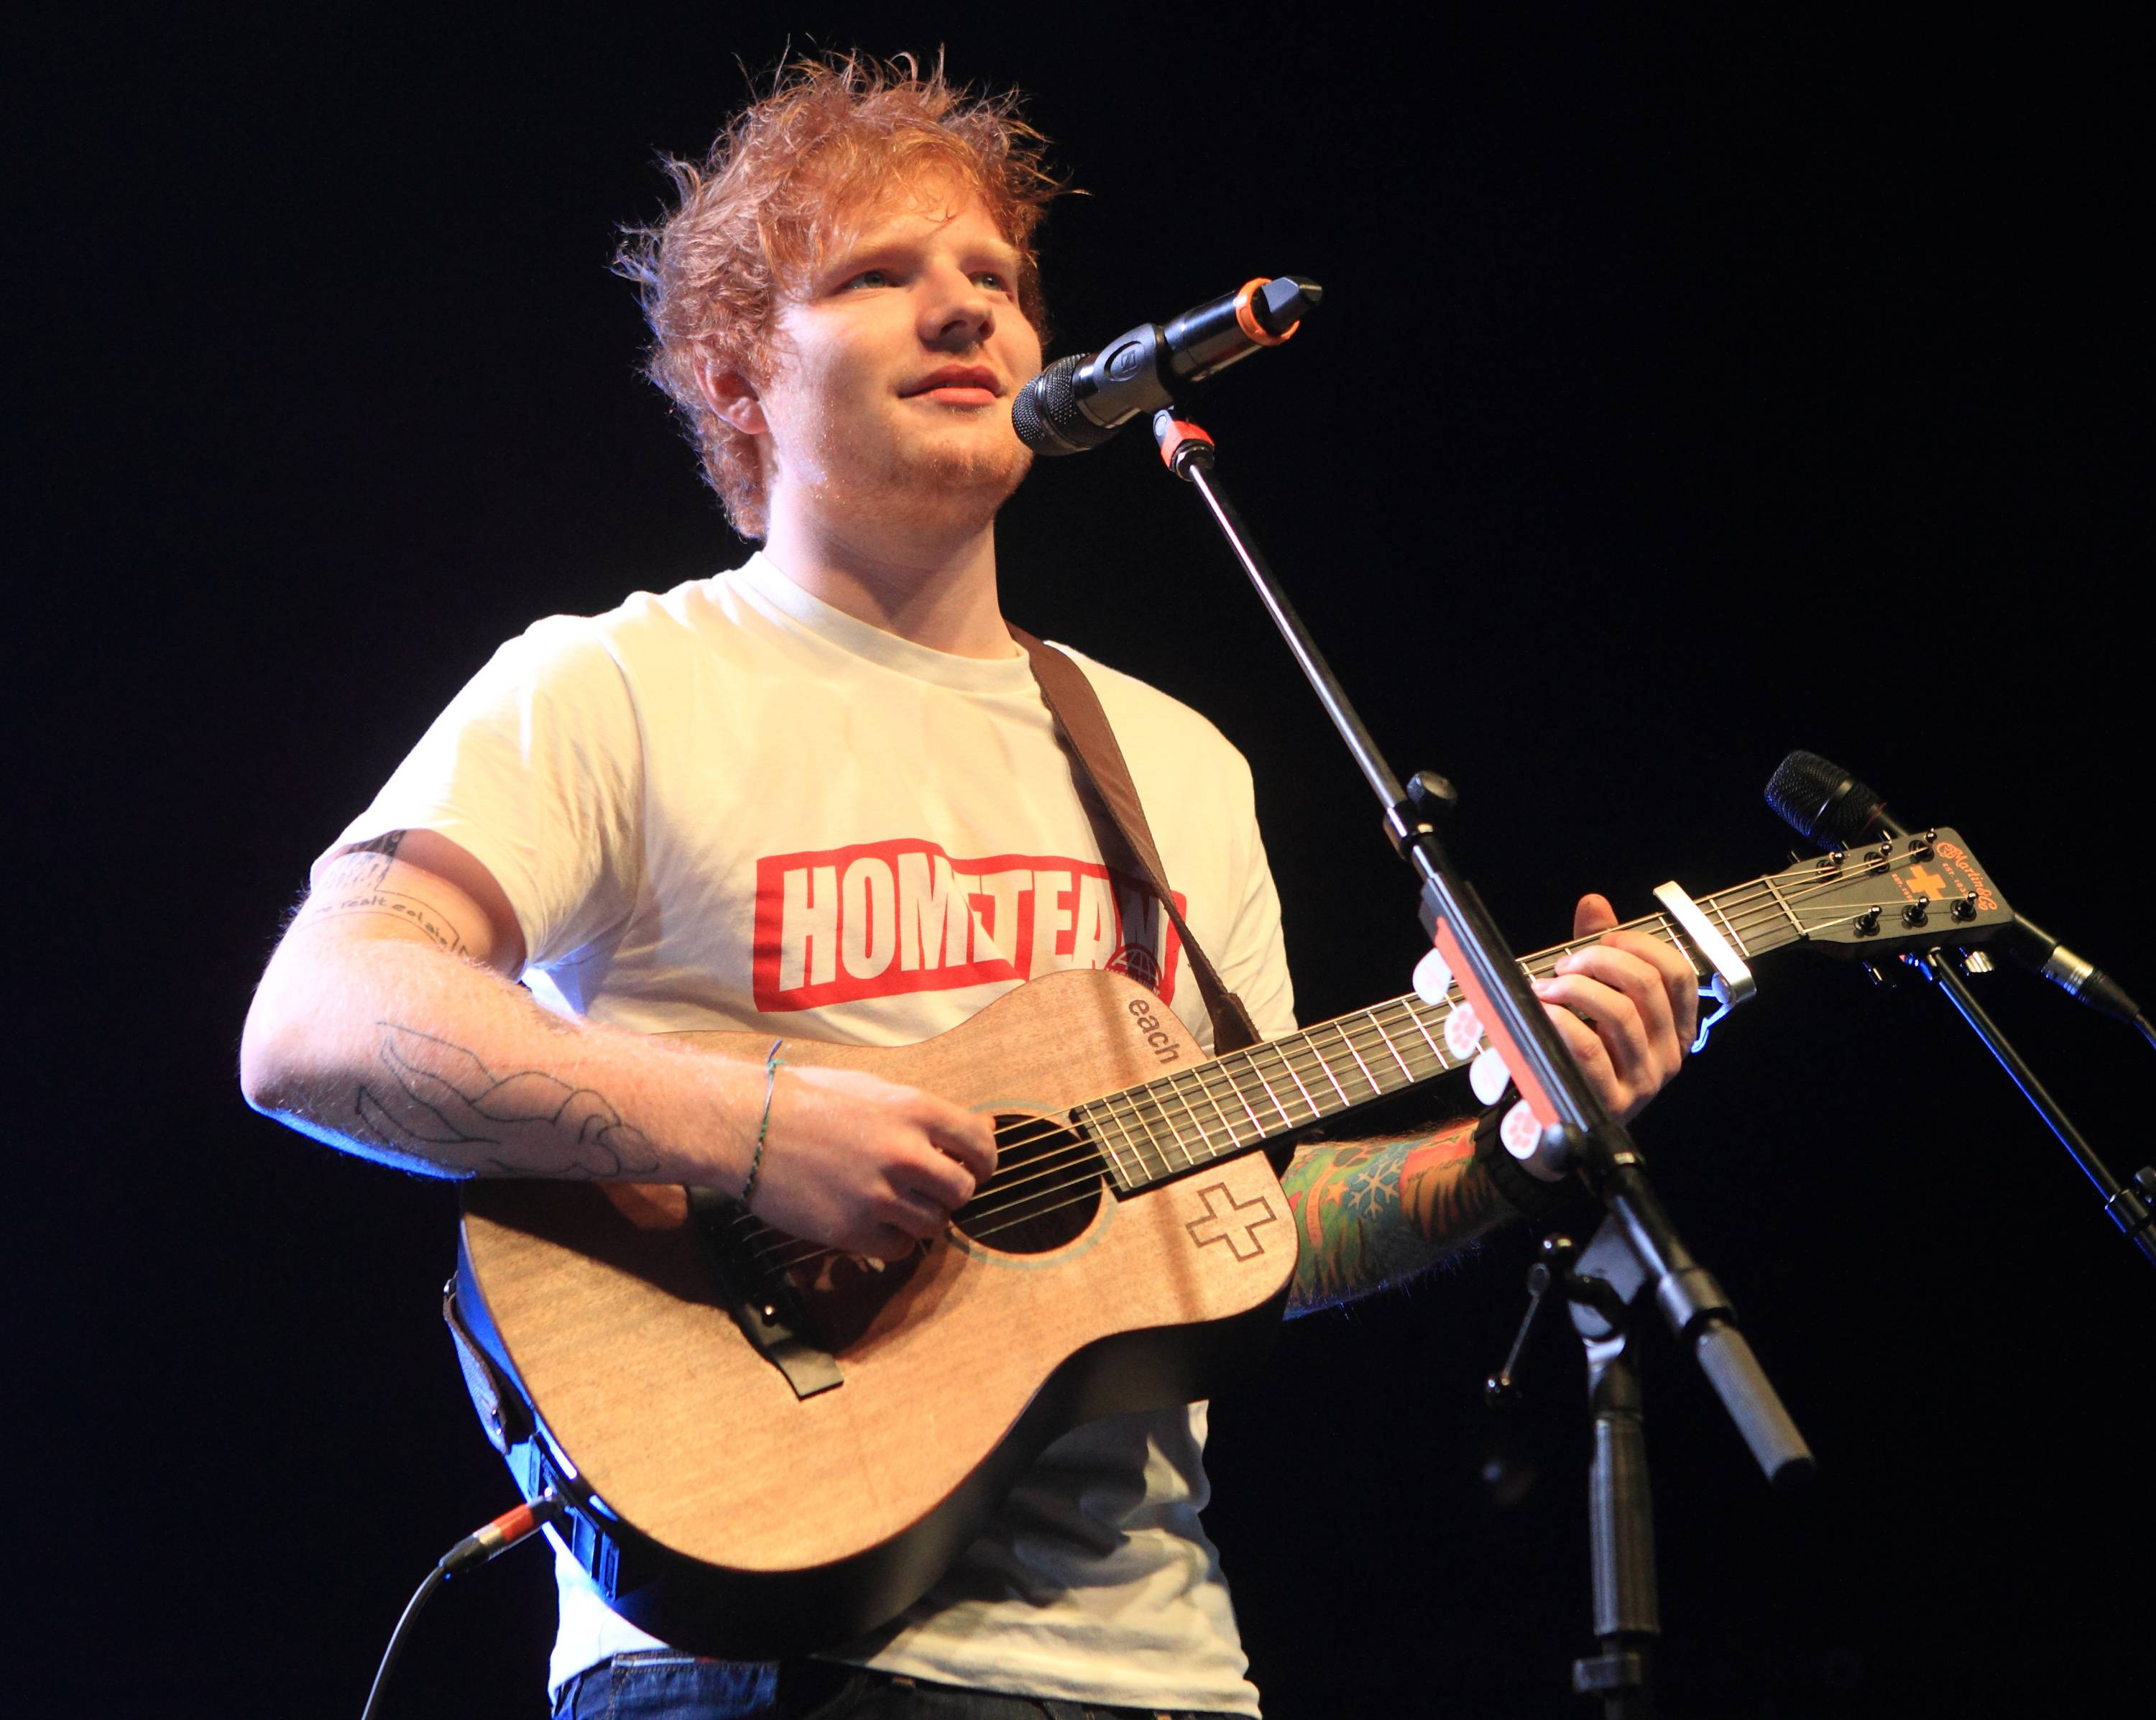 British singer-songwriter Ed Sheeran headlines on Tuesday, Sept. 16, at the Allstate Arena in Rosemont.